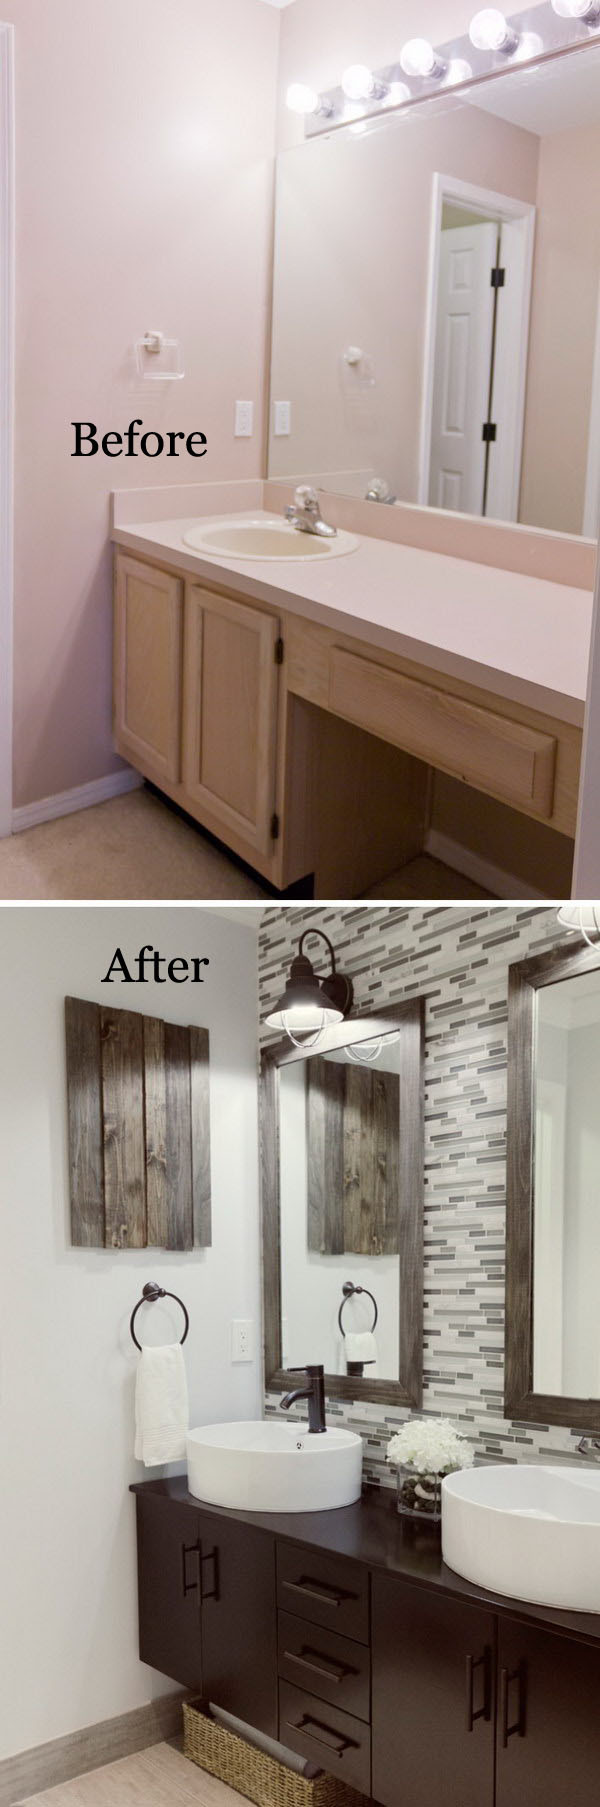 Best ideas about Diy Bathroom Remodel . Save or Pin The Immensely Cool Diy Bathroom Remodel Ways You Cannot Now.